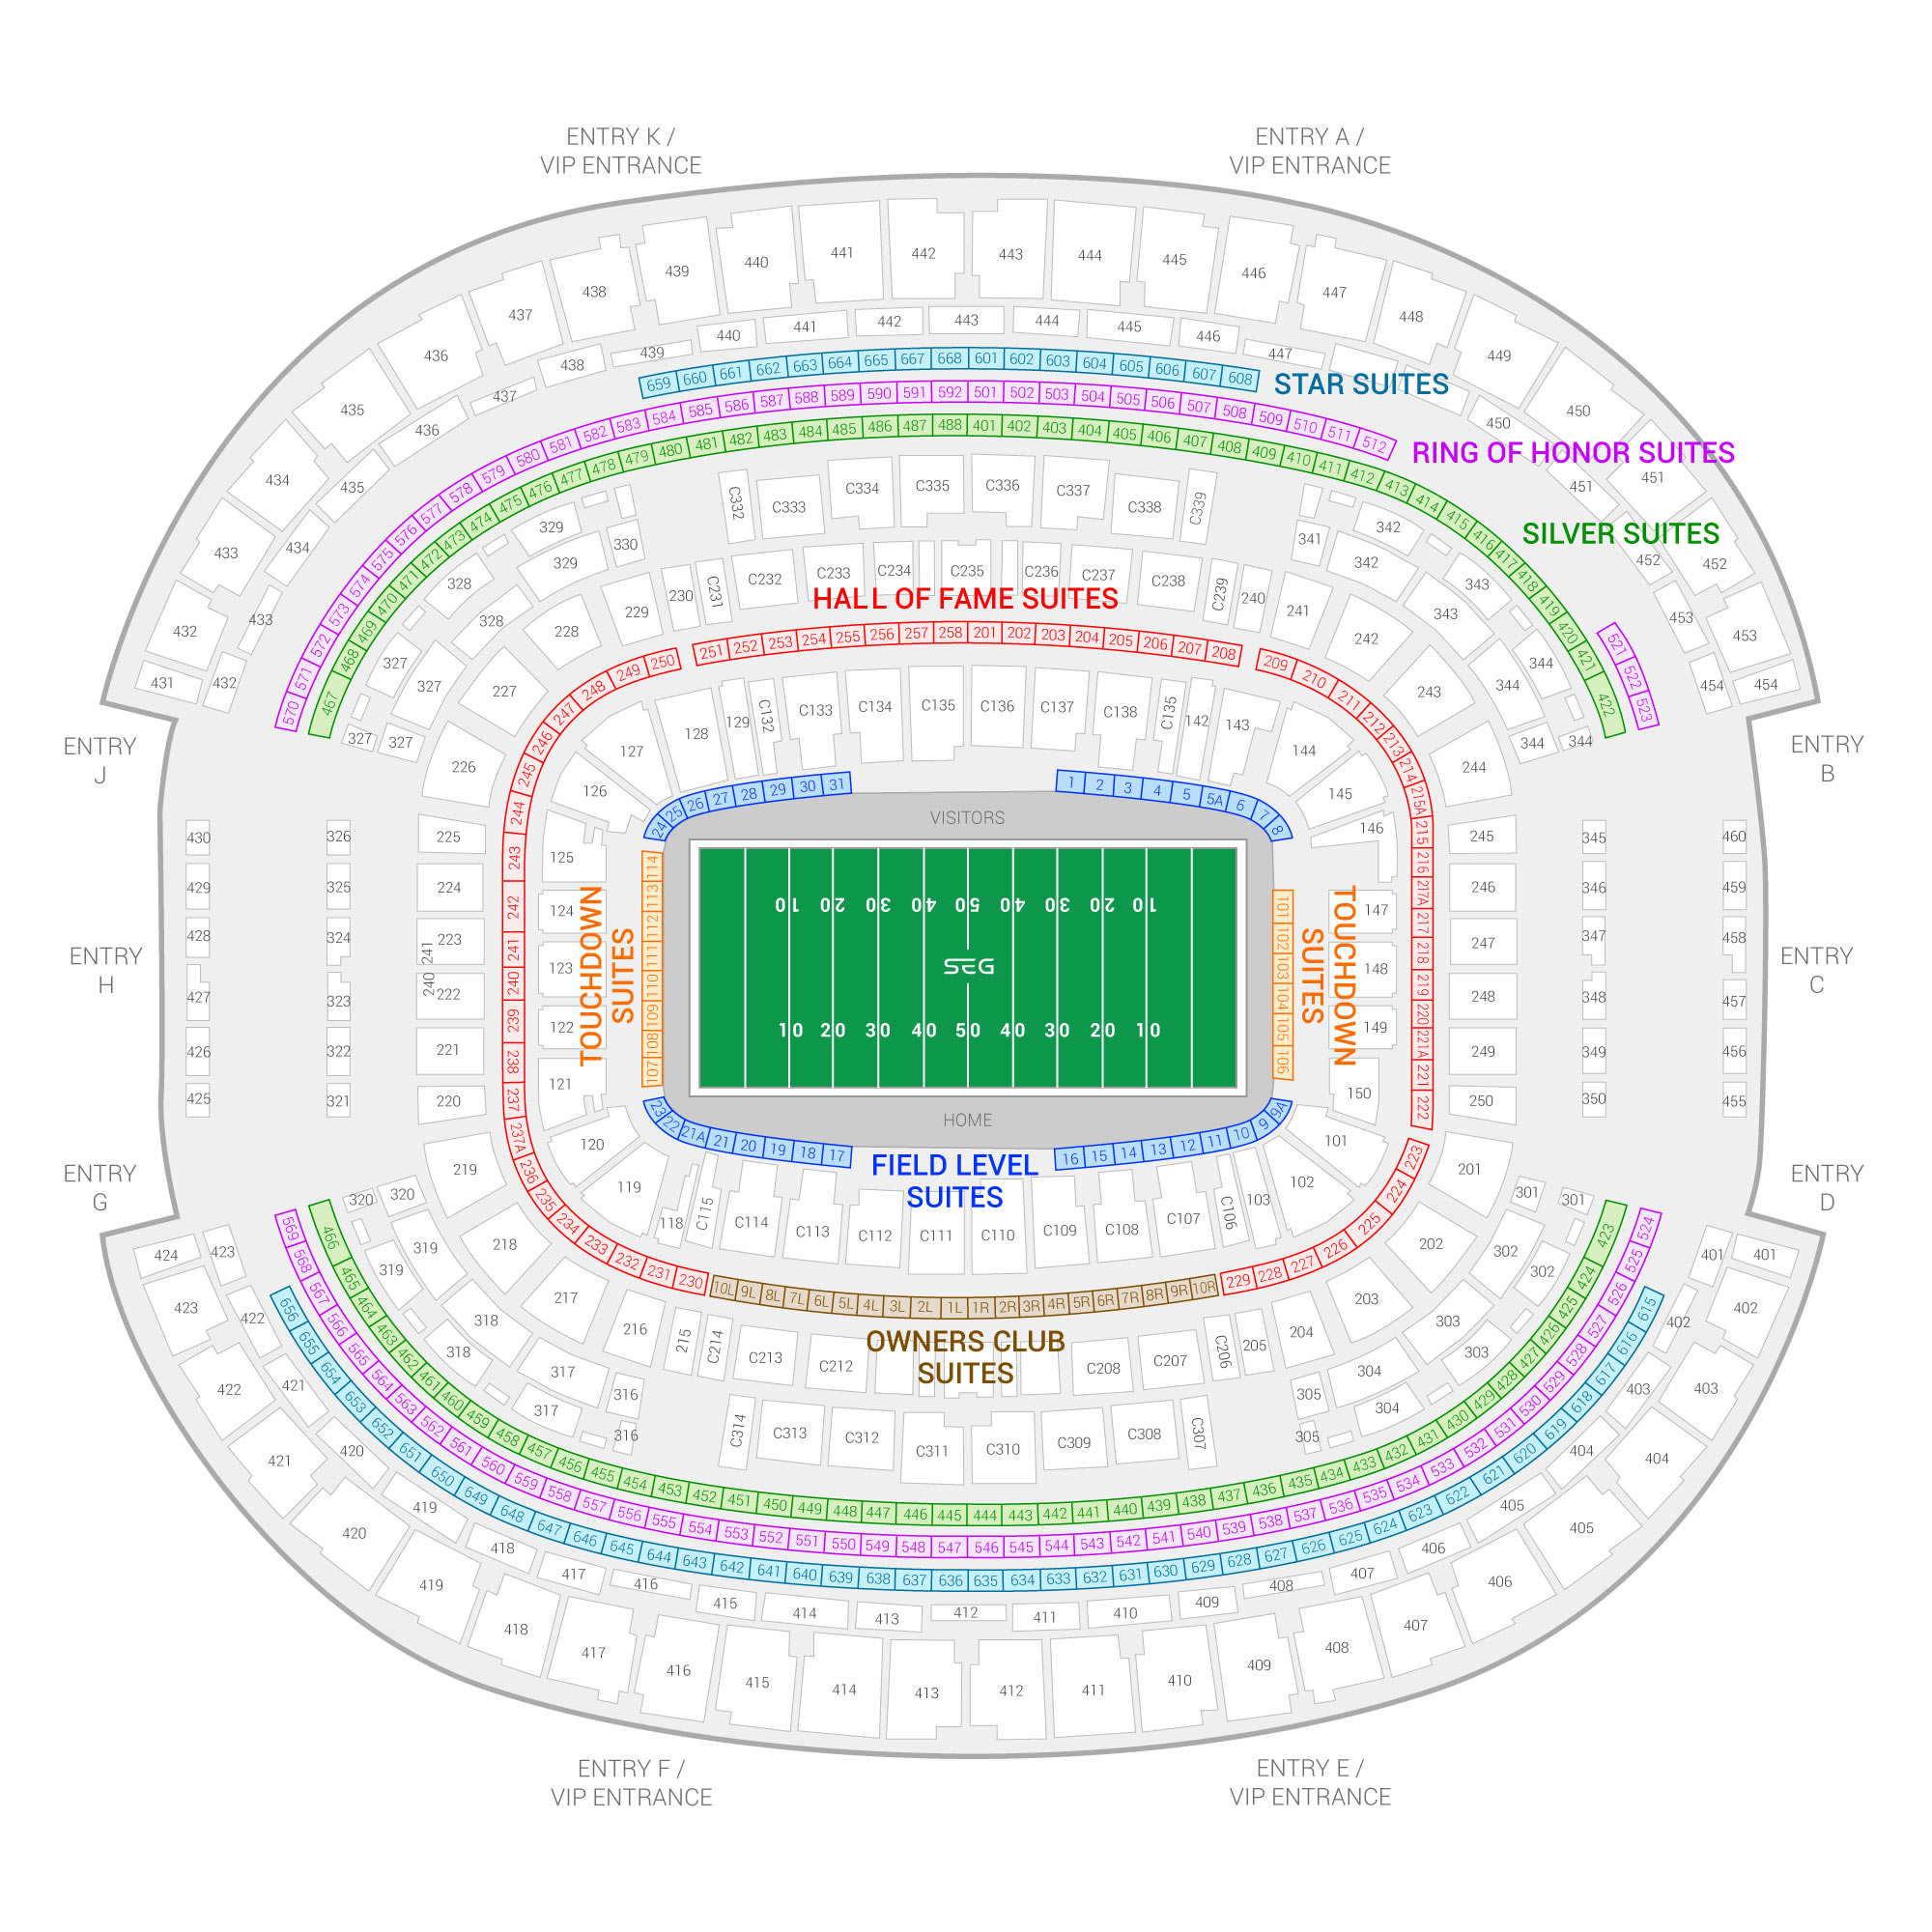 AT&T Stadium / Big 12 Football Championship Game Suite Map and Seating Chart